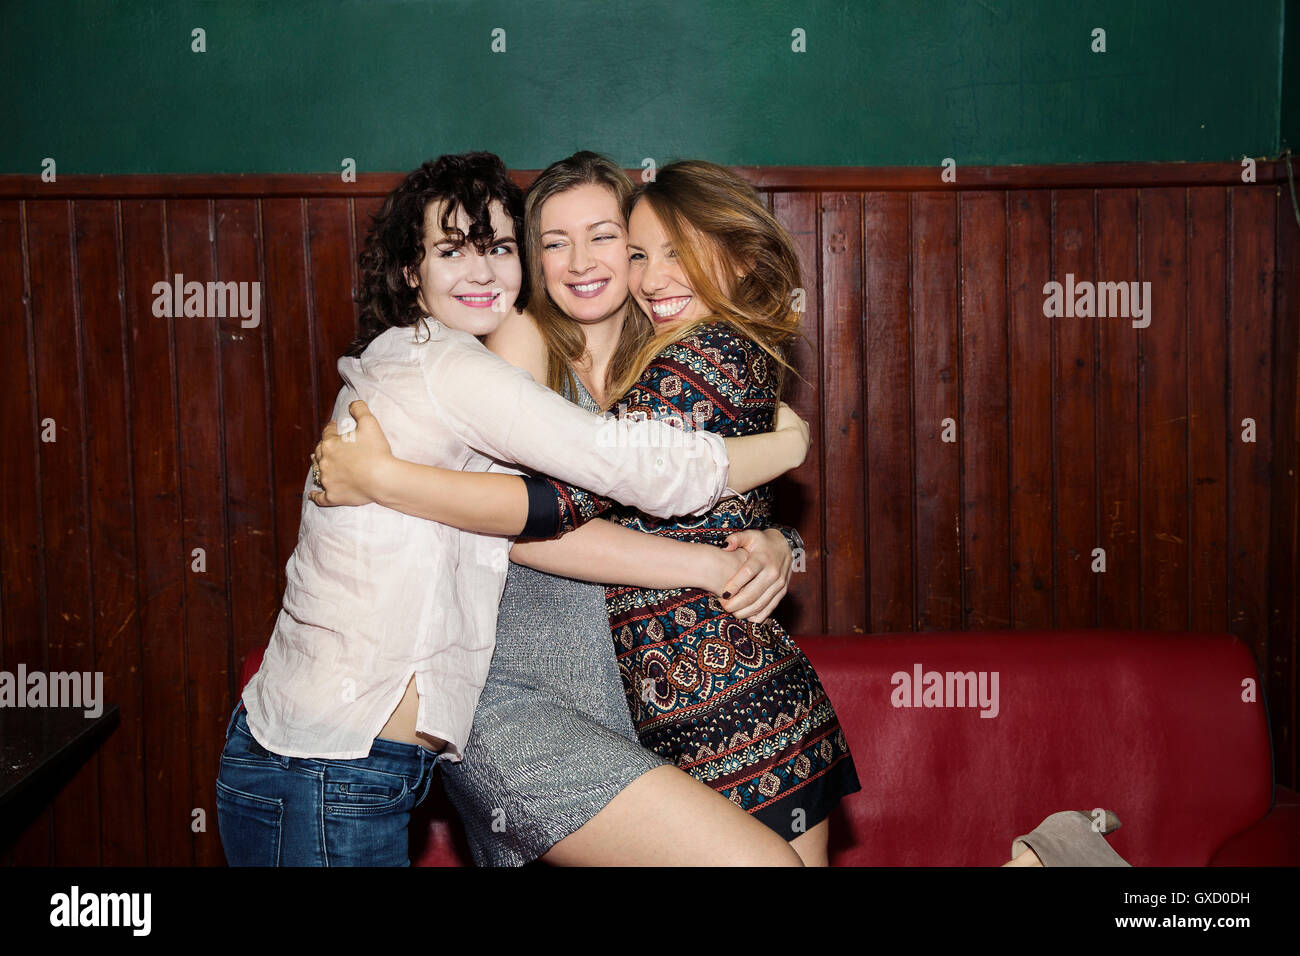 Three adult female friends having group hug in bar - Stock Image